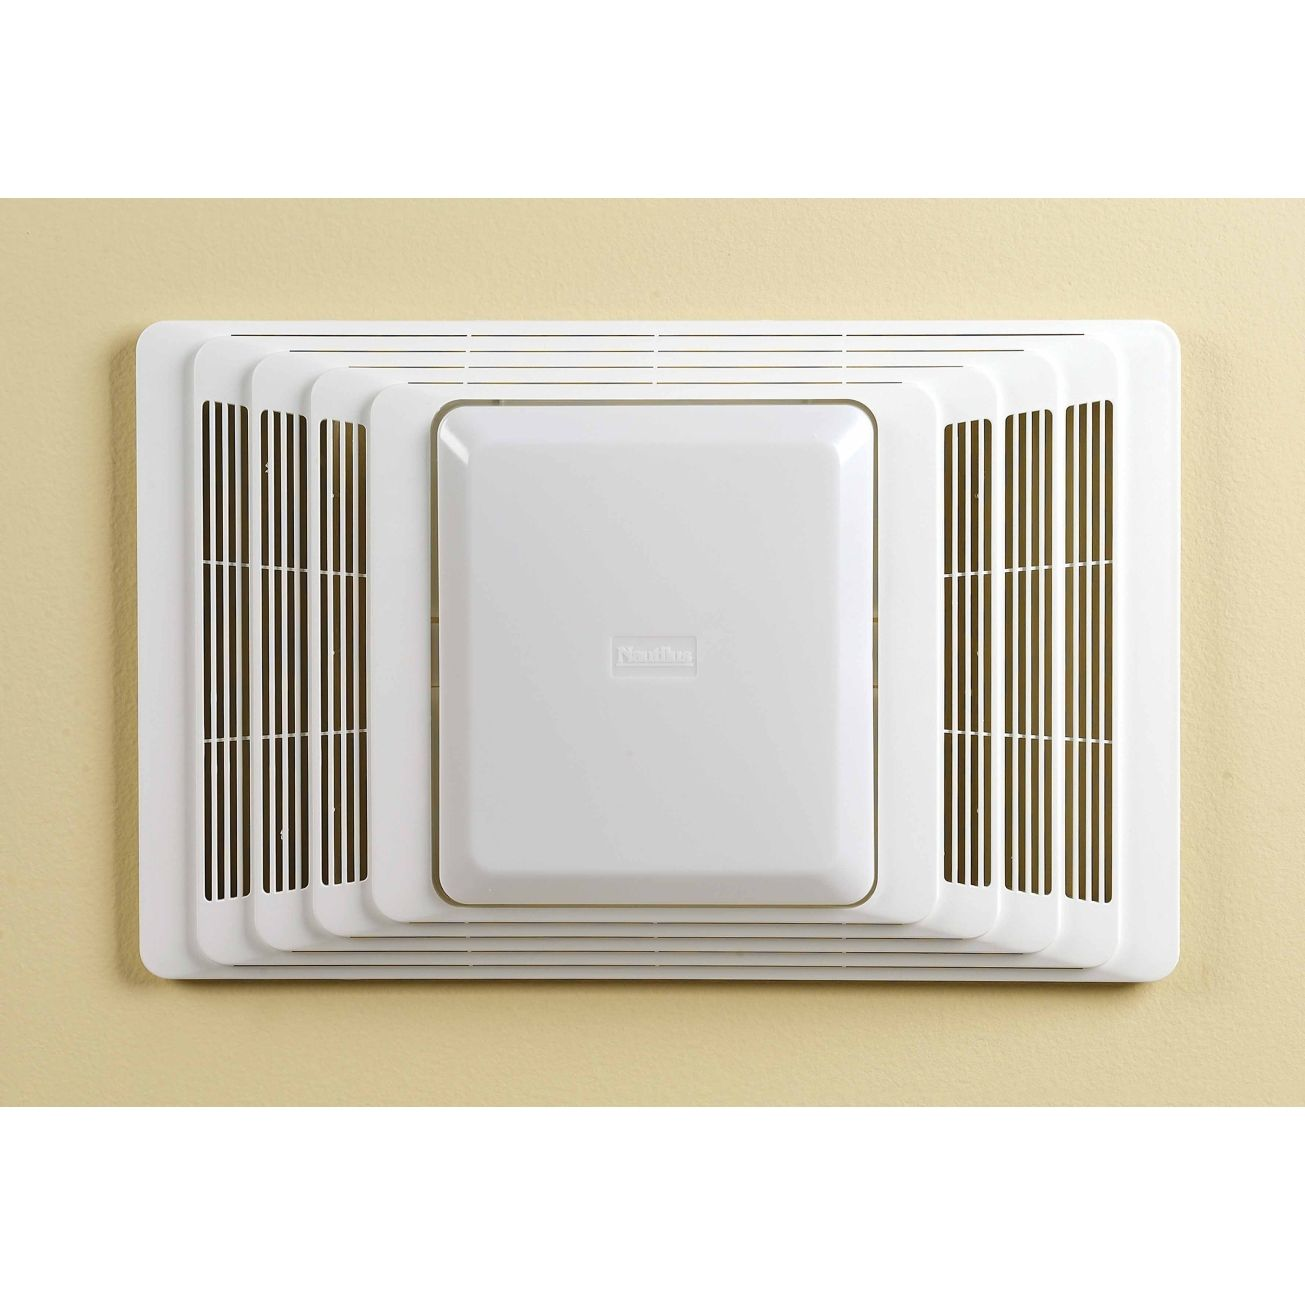 Ordinaire Broan Ventilation Fan/Heat Combination With Lights Ceiling 16 3/4 In. D X  7 7/8 In. H X 10 5/8 In(65   Bath Fans U0026 Heaters